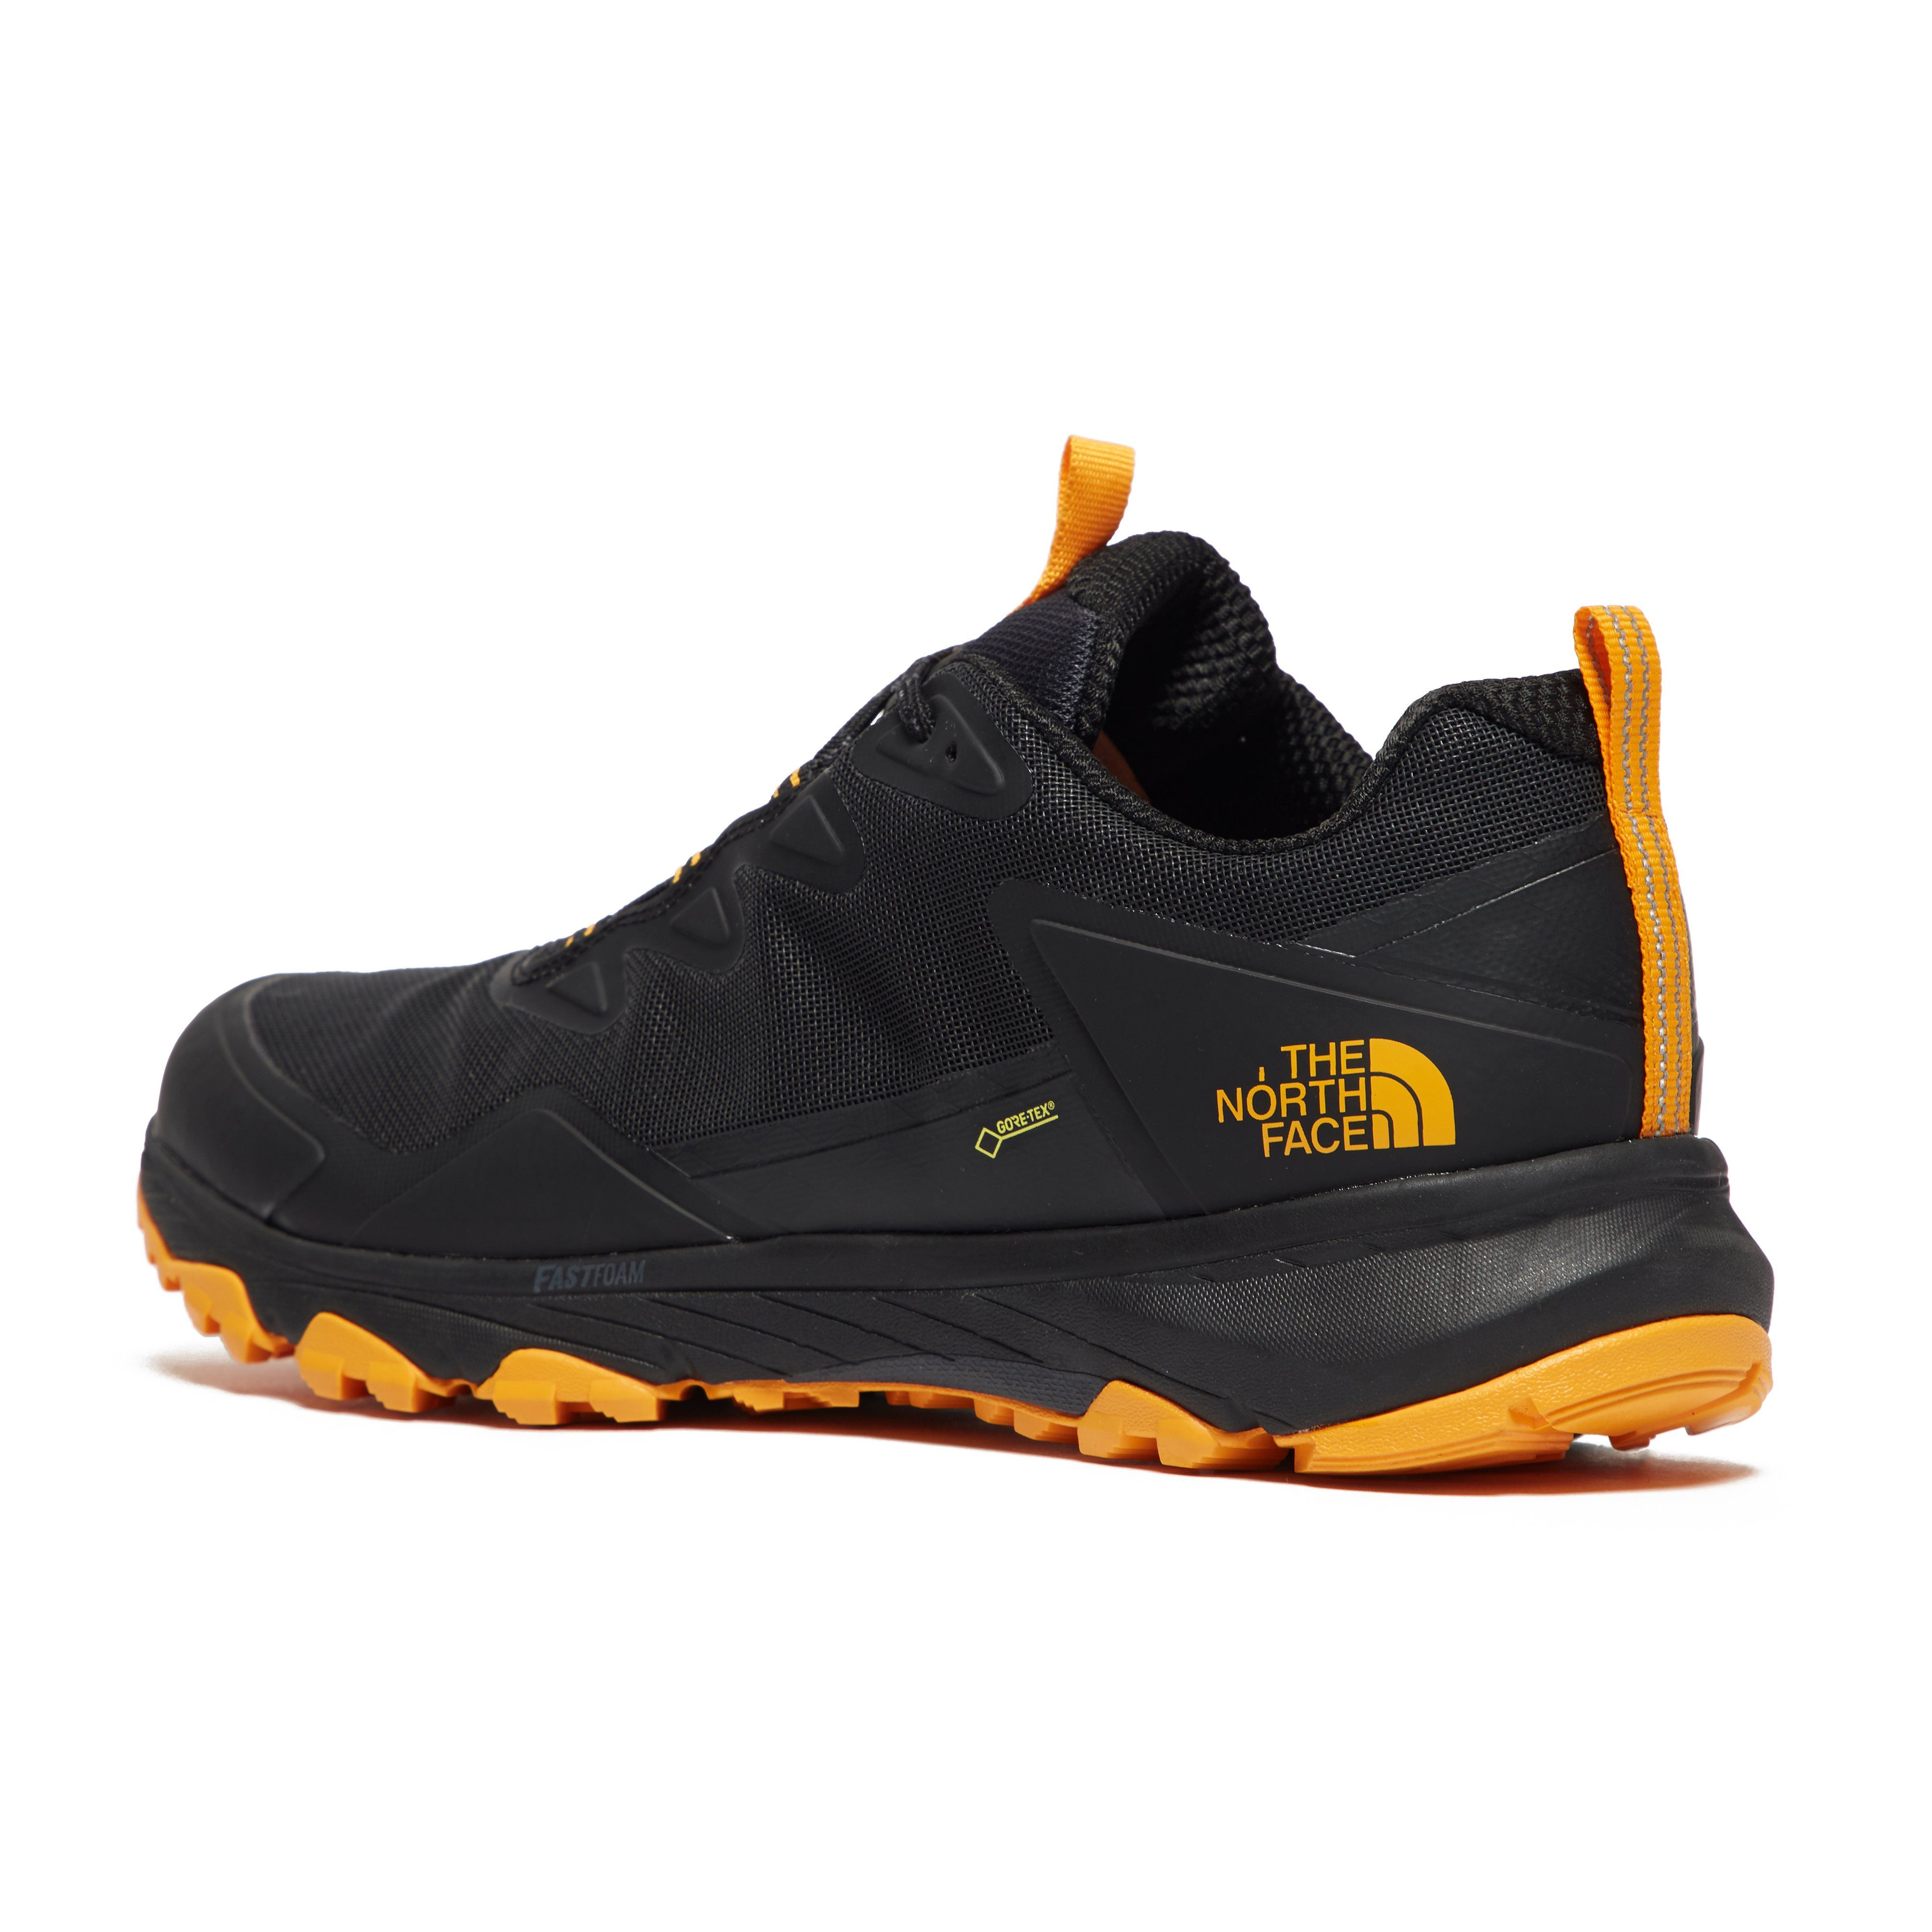 The North Face Ultra FastPack III GTX Men's Hiking Shoes